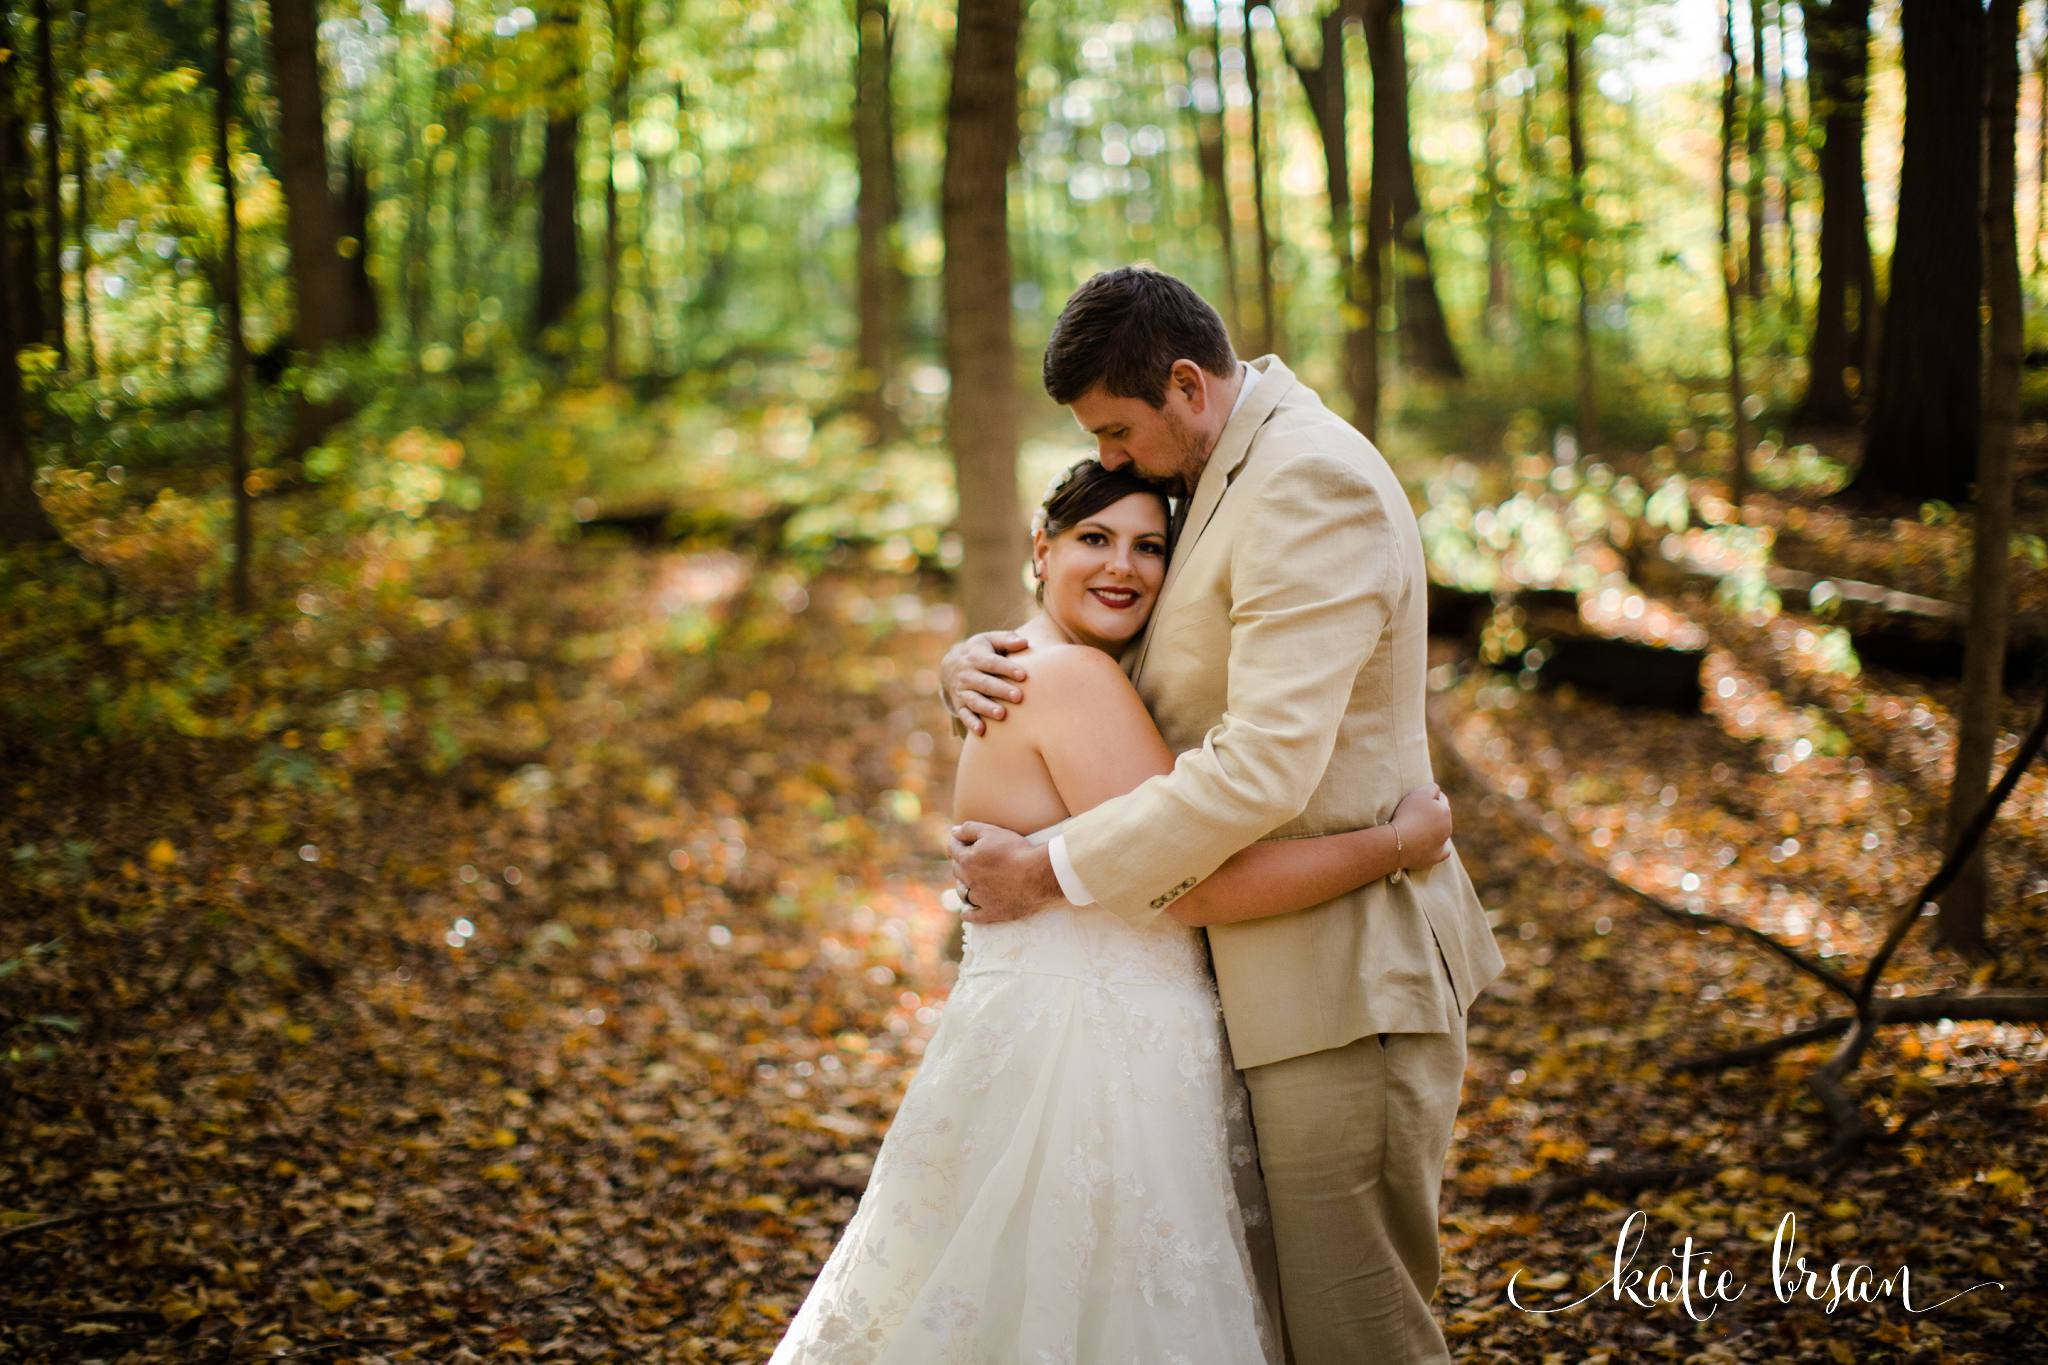 DownersGrove_BackyardWedding_GilbertsPark_1065.jpg